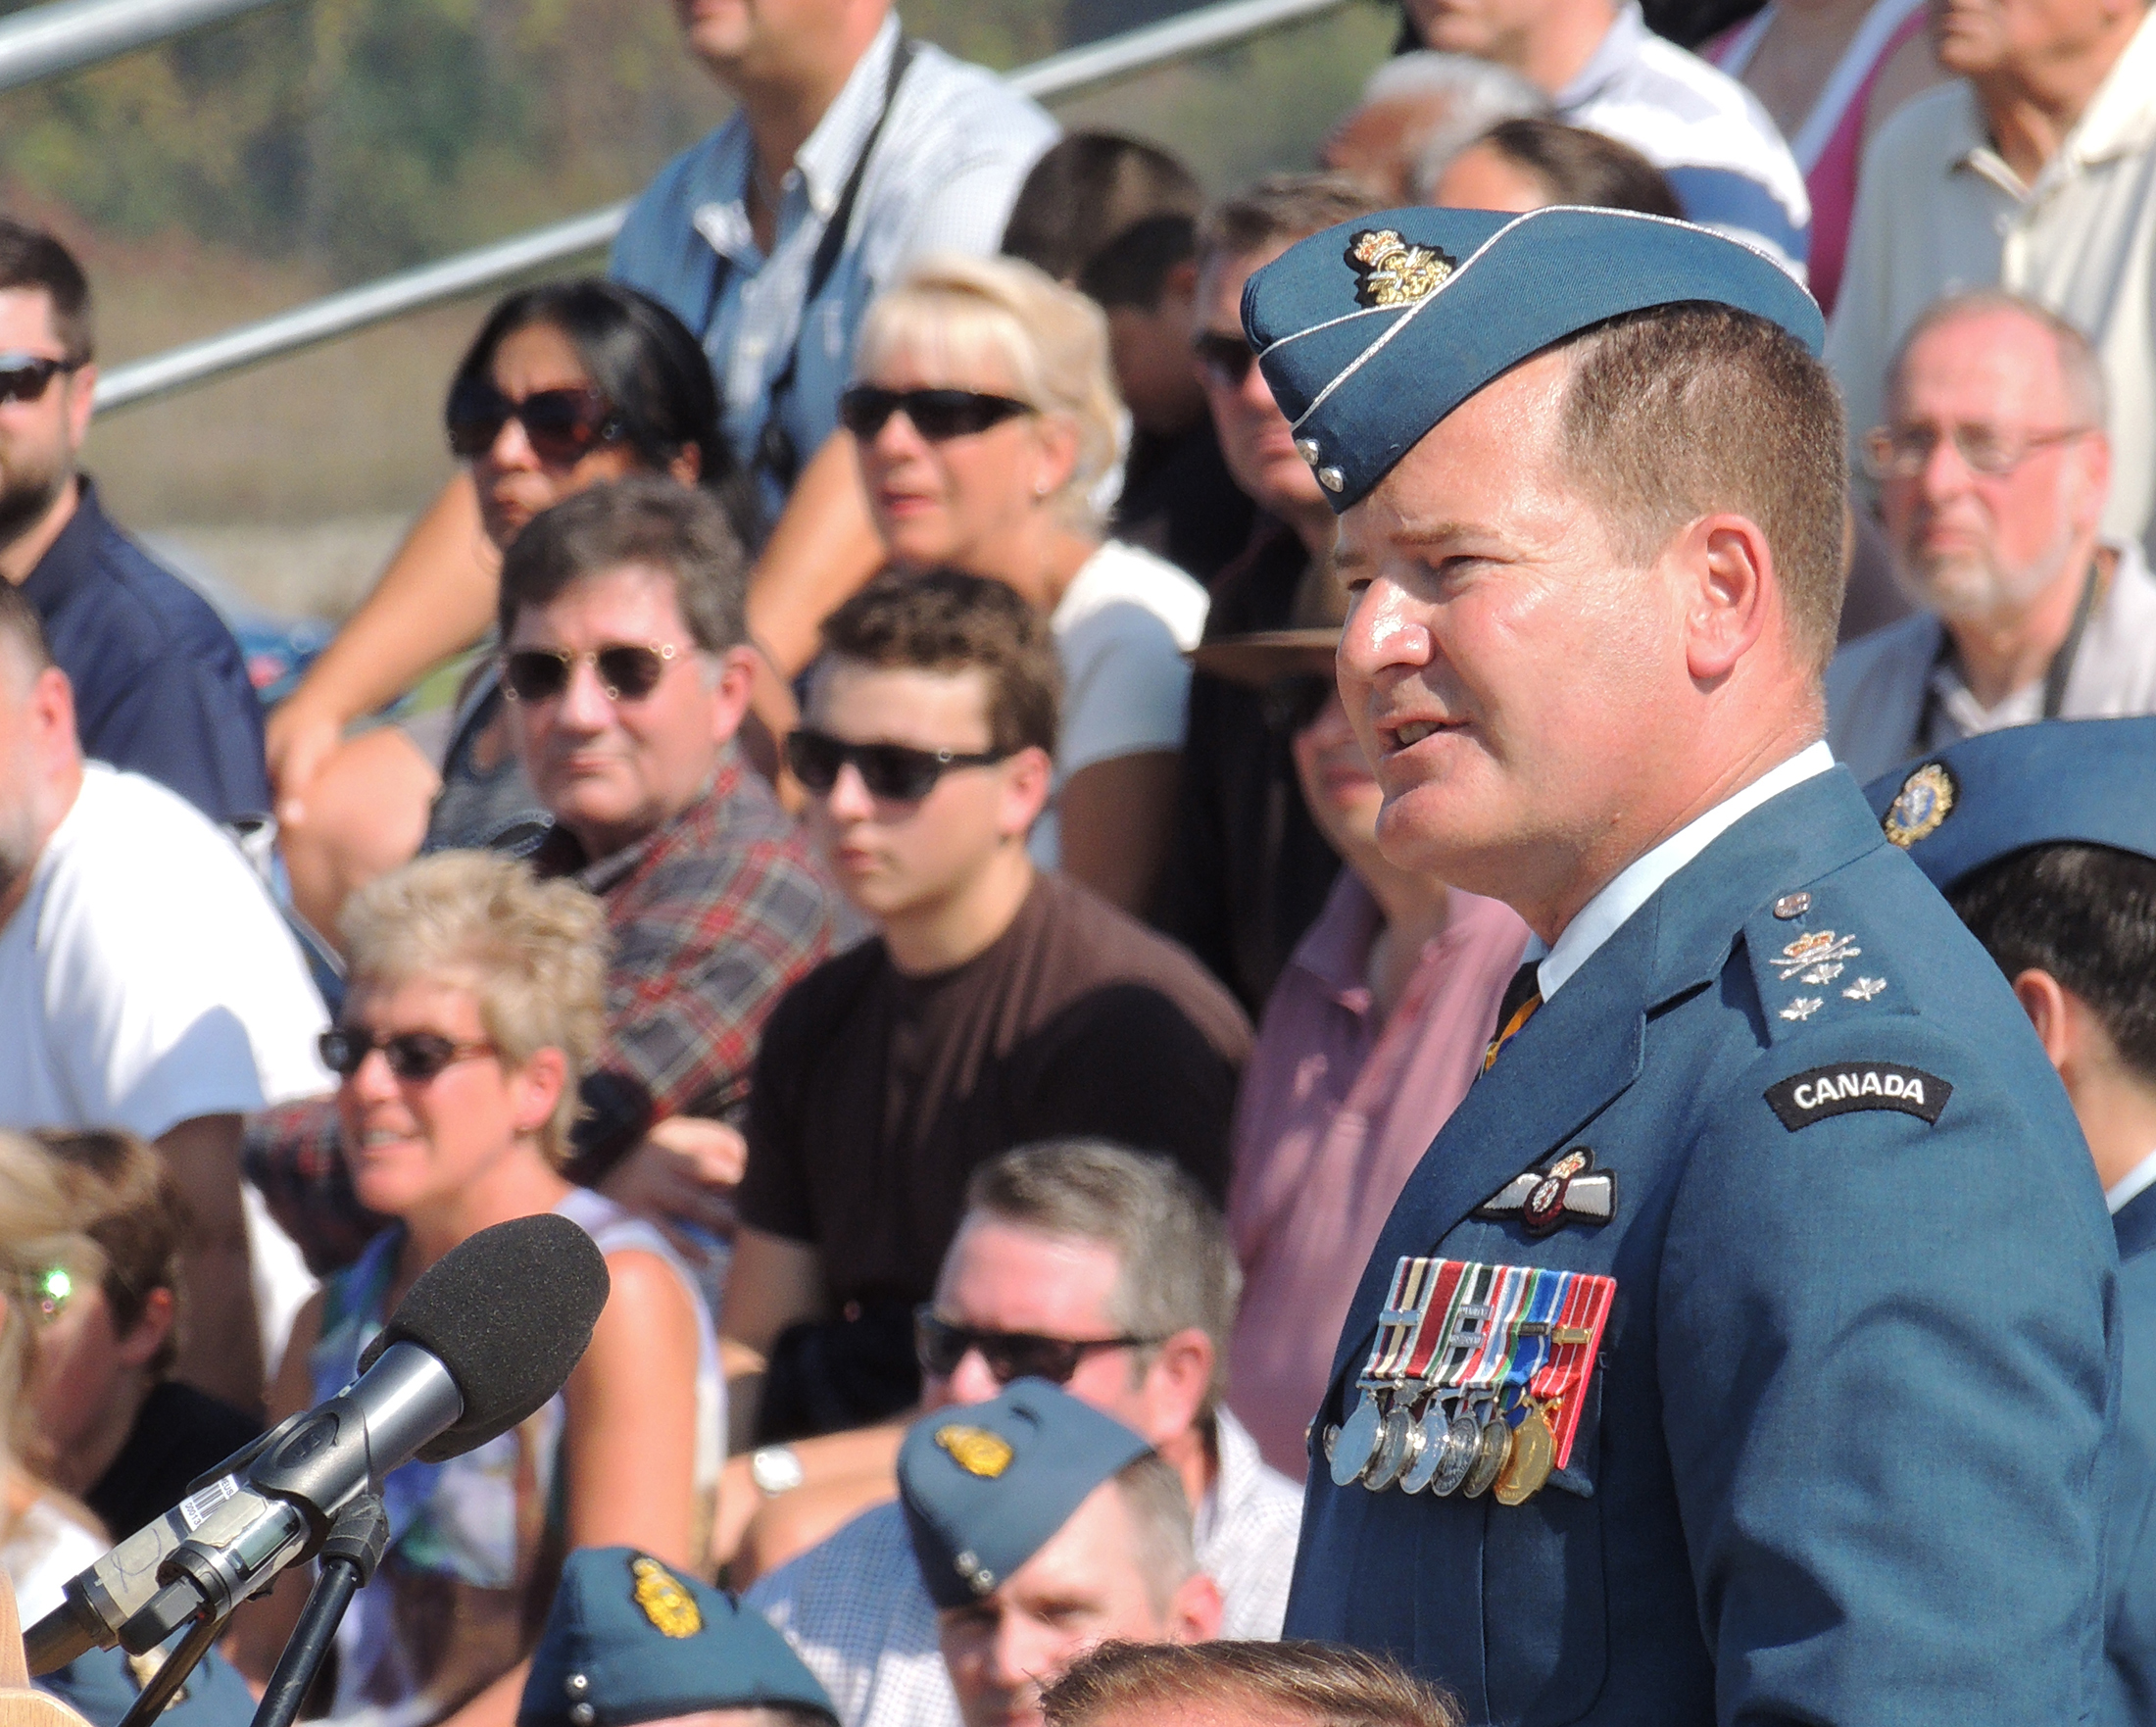 Lieutenant-General Michael Hood, commander of the Royal Canadian Air Force, speaks to parade participants and spectators during Canada's national Battle of Britain parade held September 17, 2017, at the Vintage Wings of Canada hangar in Gatineau, Quebec. PHOTO: Joanna Calder